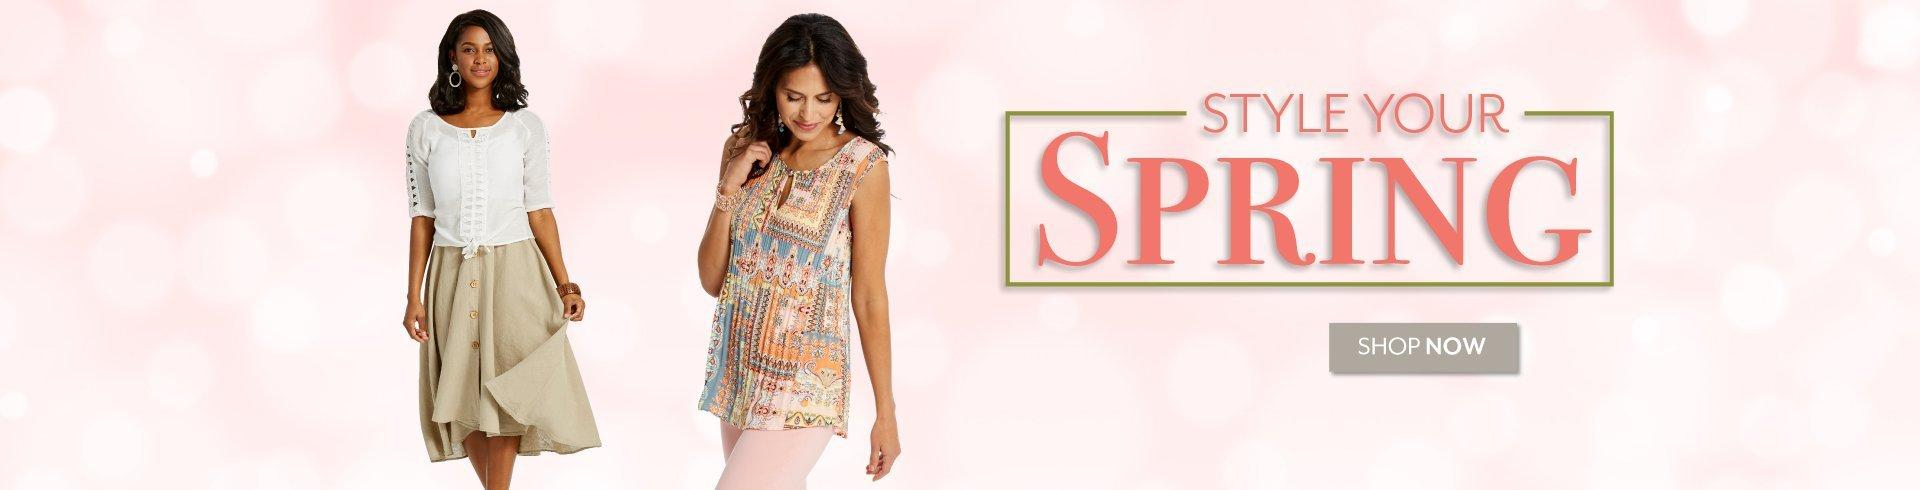 Style Your Spring - Shop the latest trends in Women's Fashion at Burkes Outlet